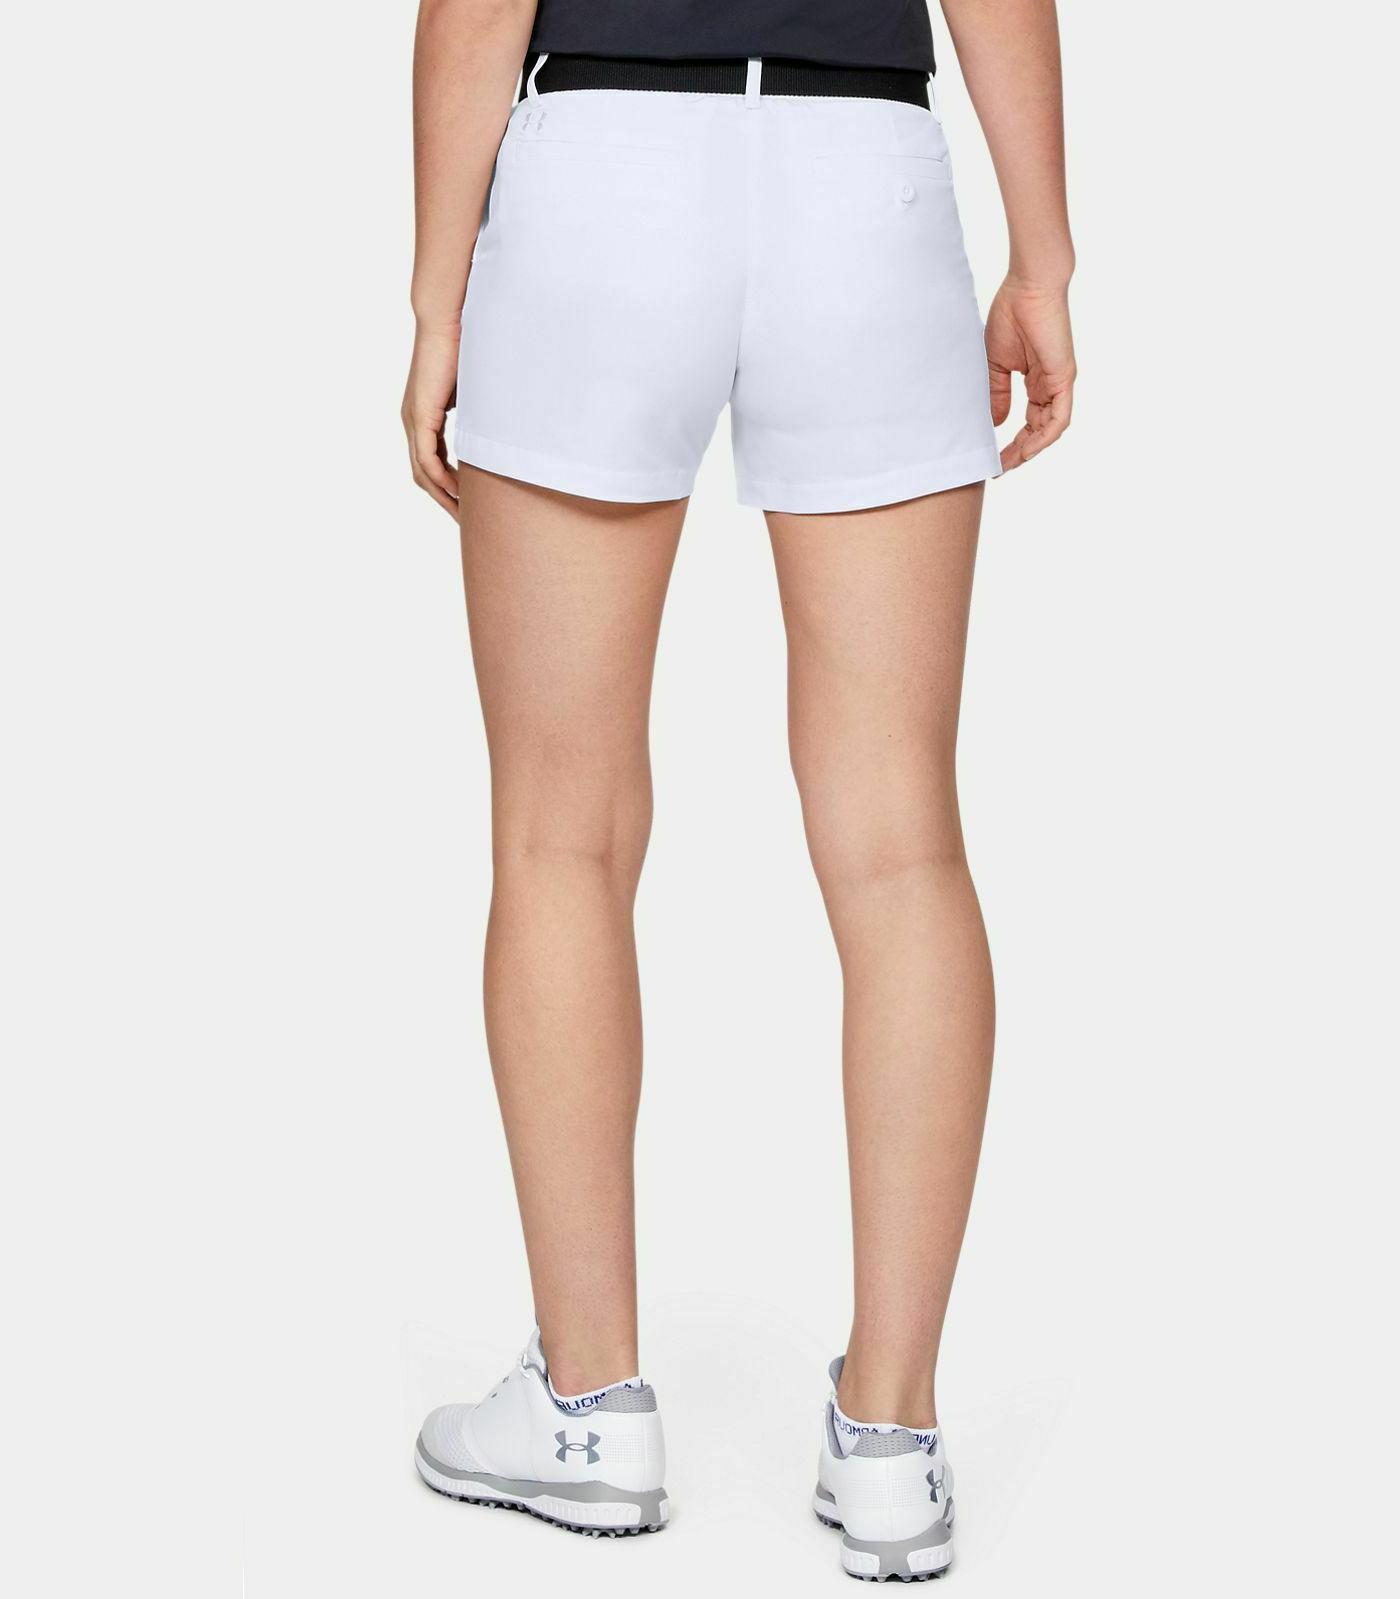 Women's Under Armour Shorty Size